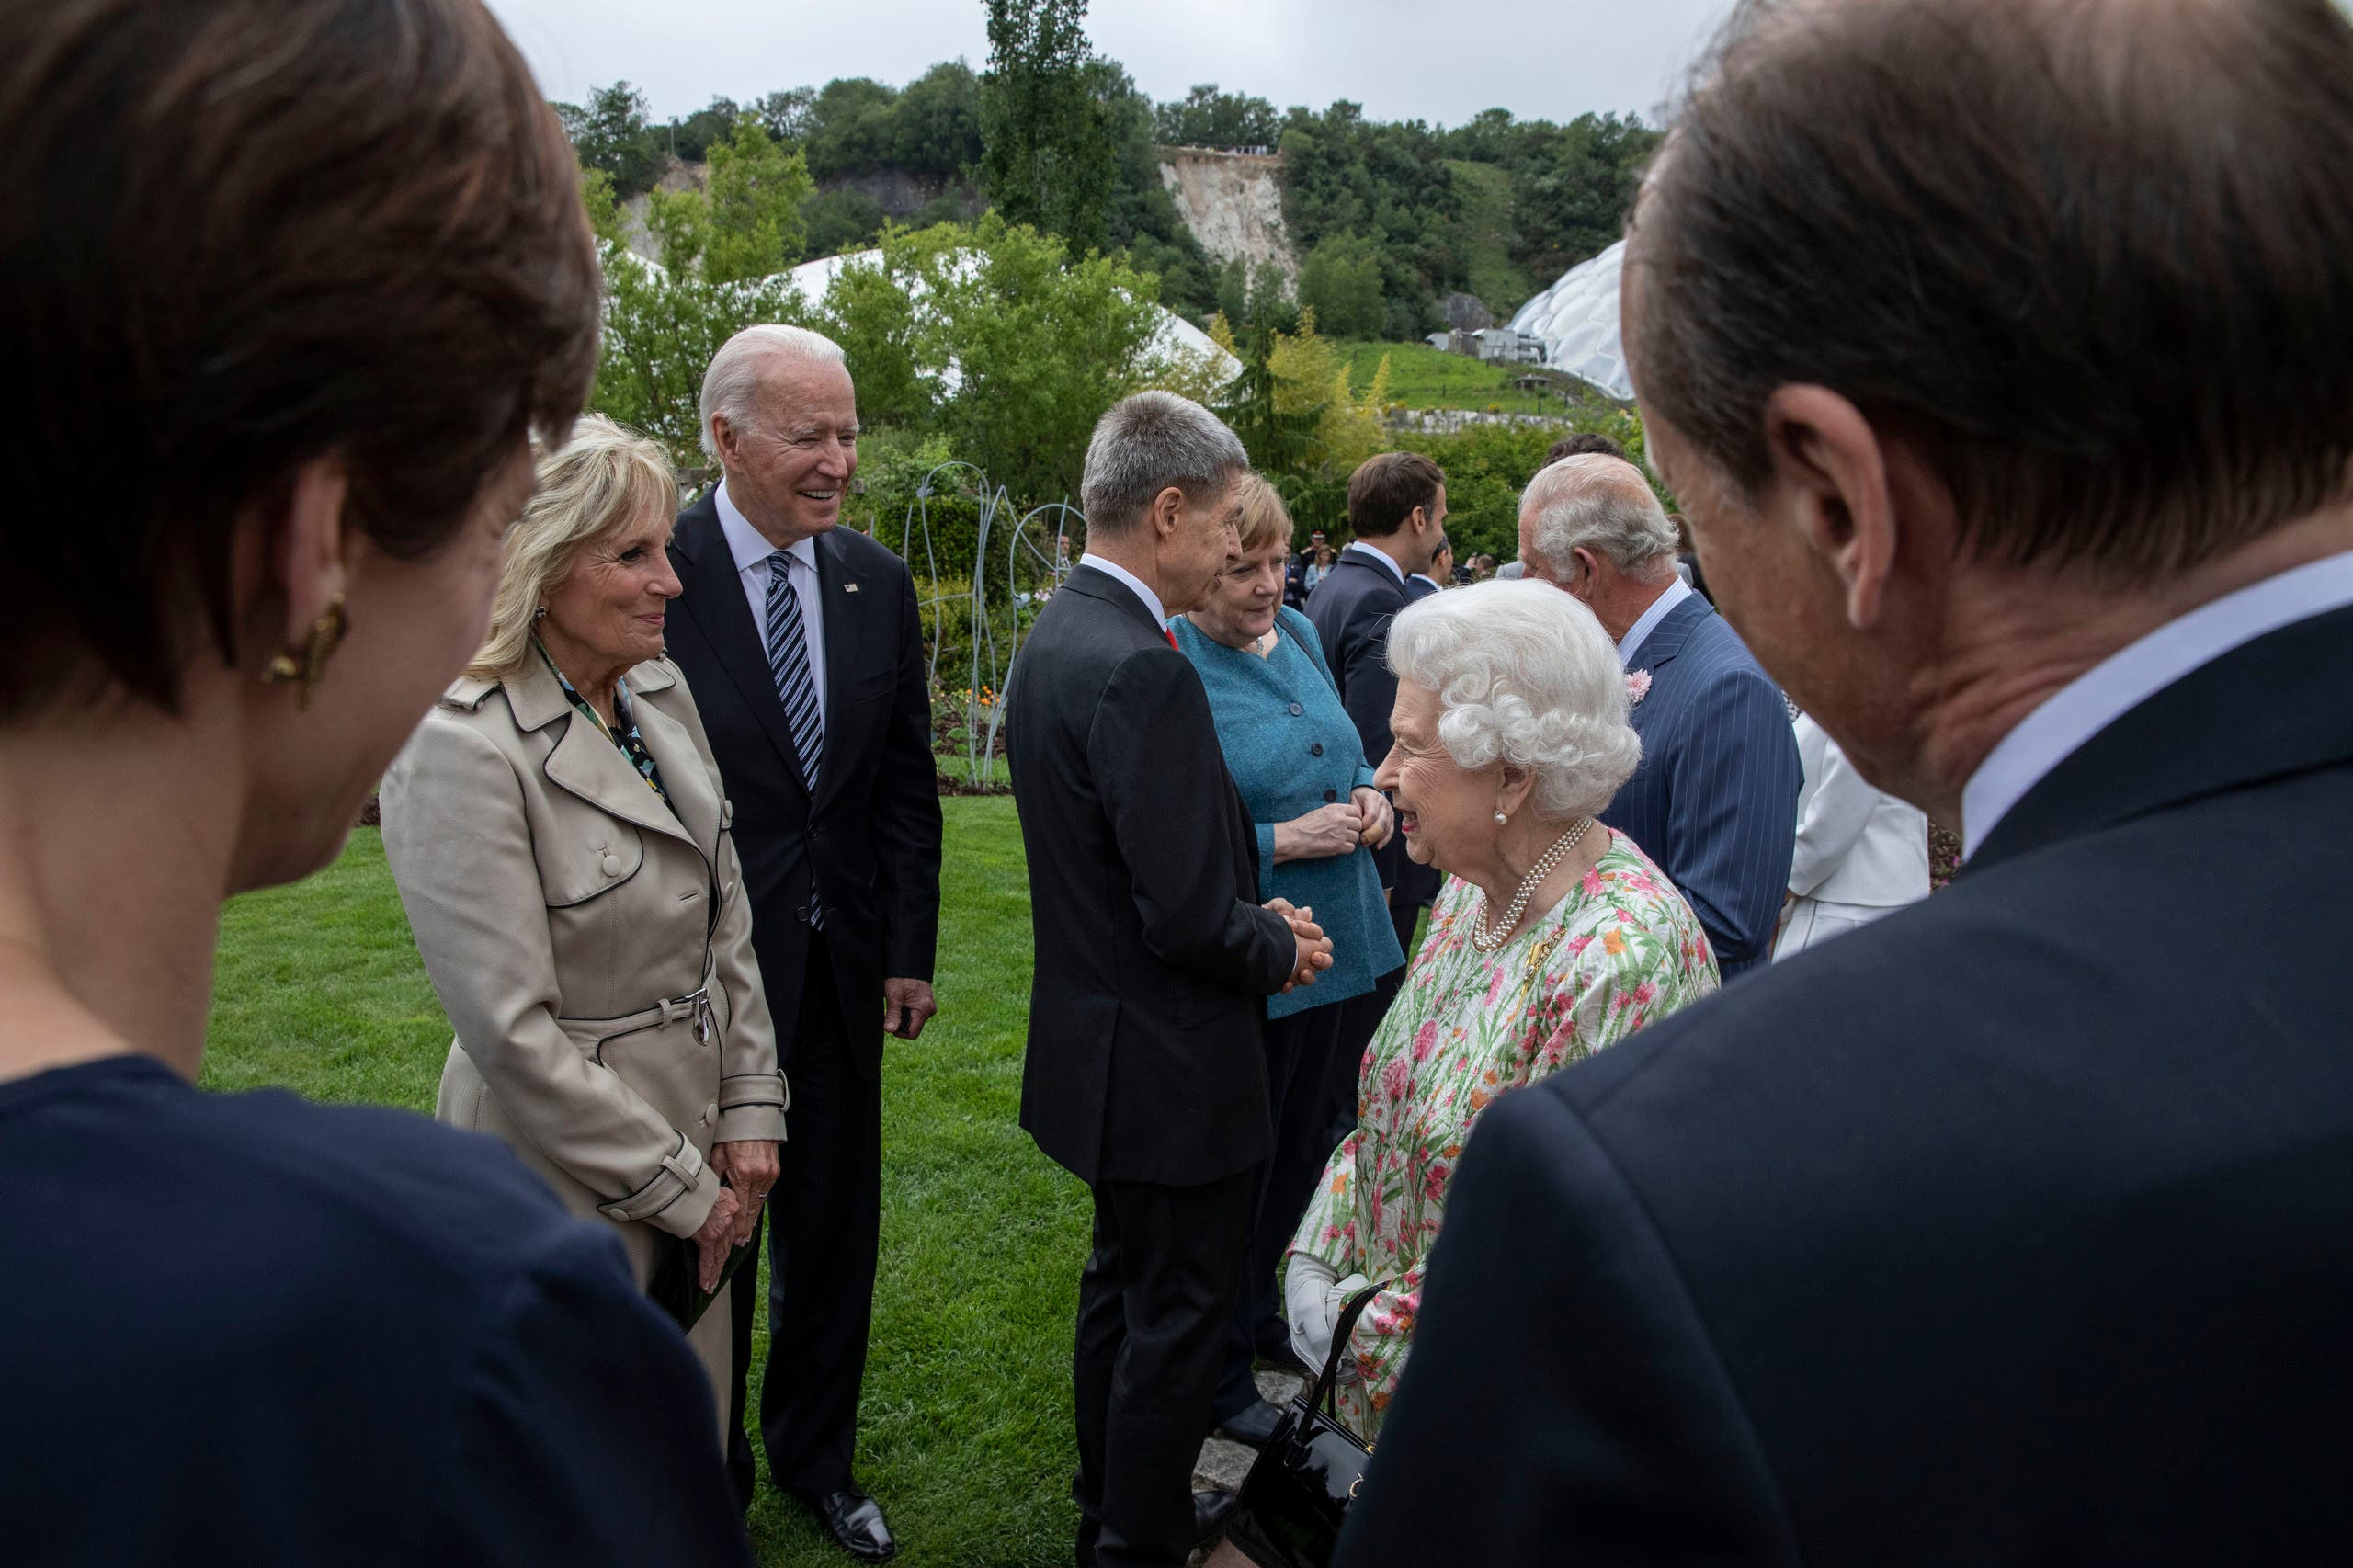 Britain's Queen Elizabeth II, centre. right, speaks to US President Joe Biden, centre left and first lady Jill Biden, at a reception for the G7 leaders at the Eden Project in Cornwall, England, Friday June 11, 2021, during the G7 summit. (AP)